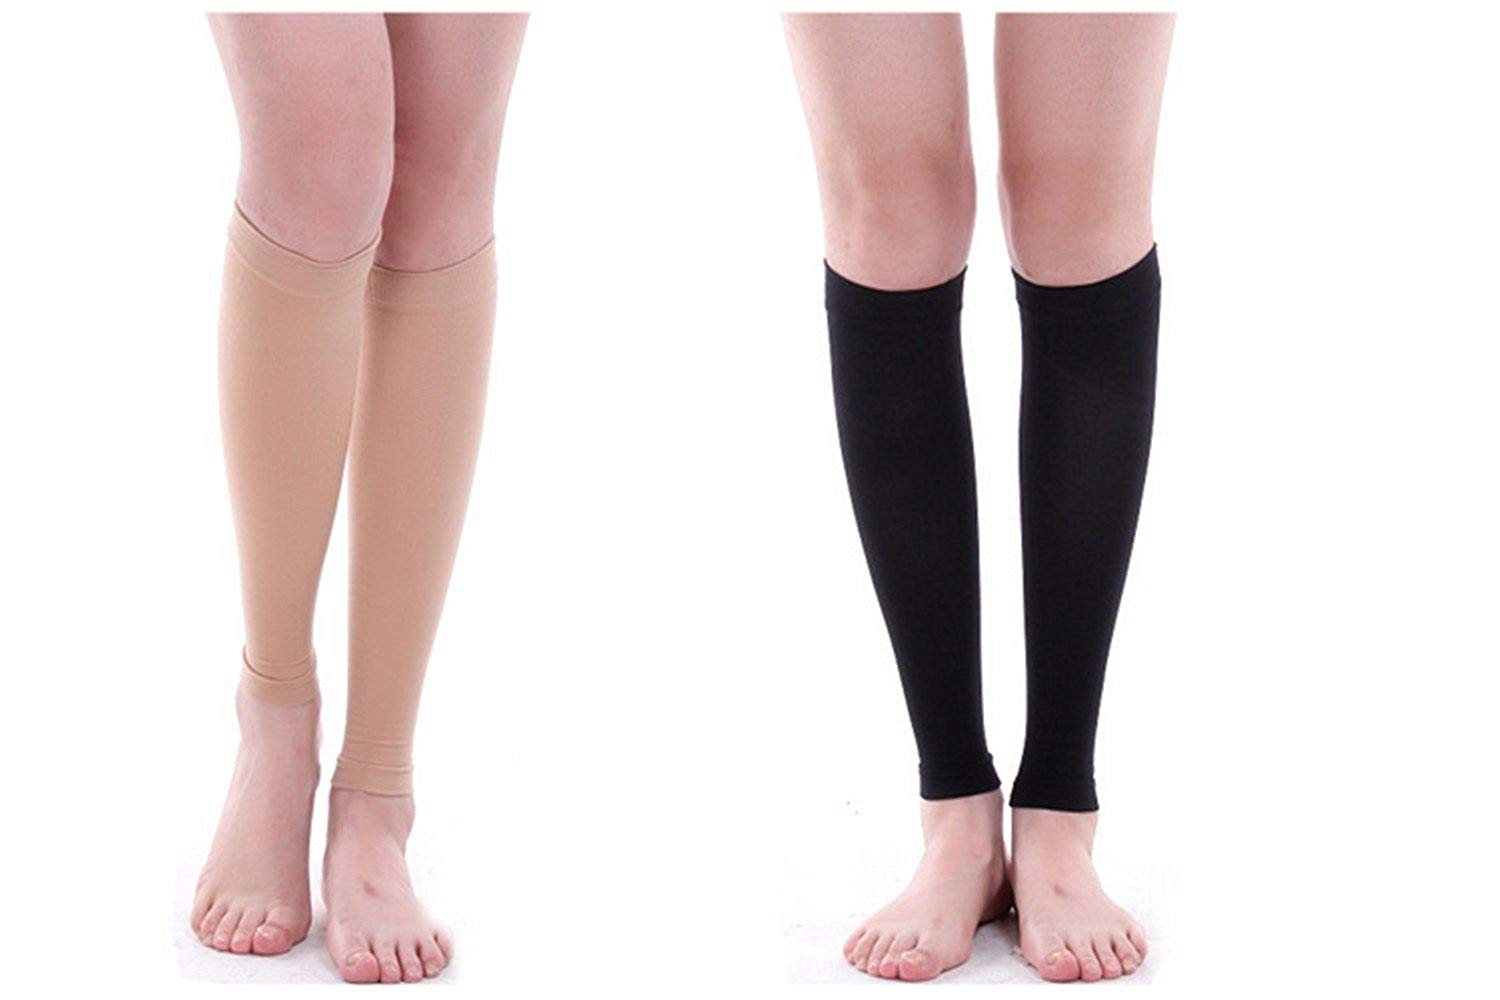 ZEALWOOD Merino Wool Calf Compression Sleeve Leg Performance Support Shin Splint /& Calf Pain Relief Men Women Runners Guards Sleeves Running